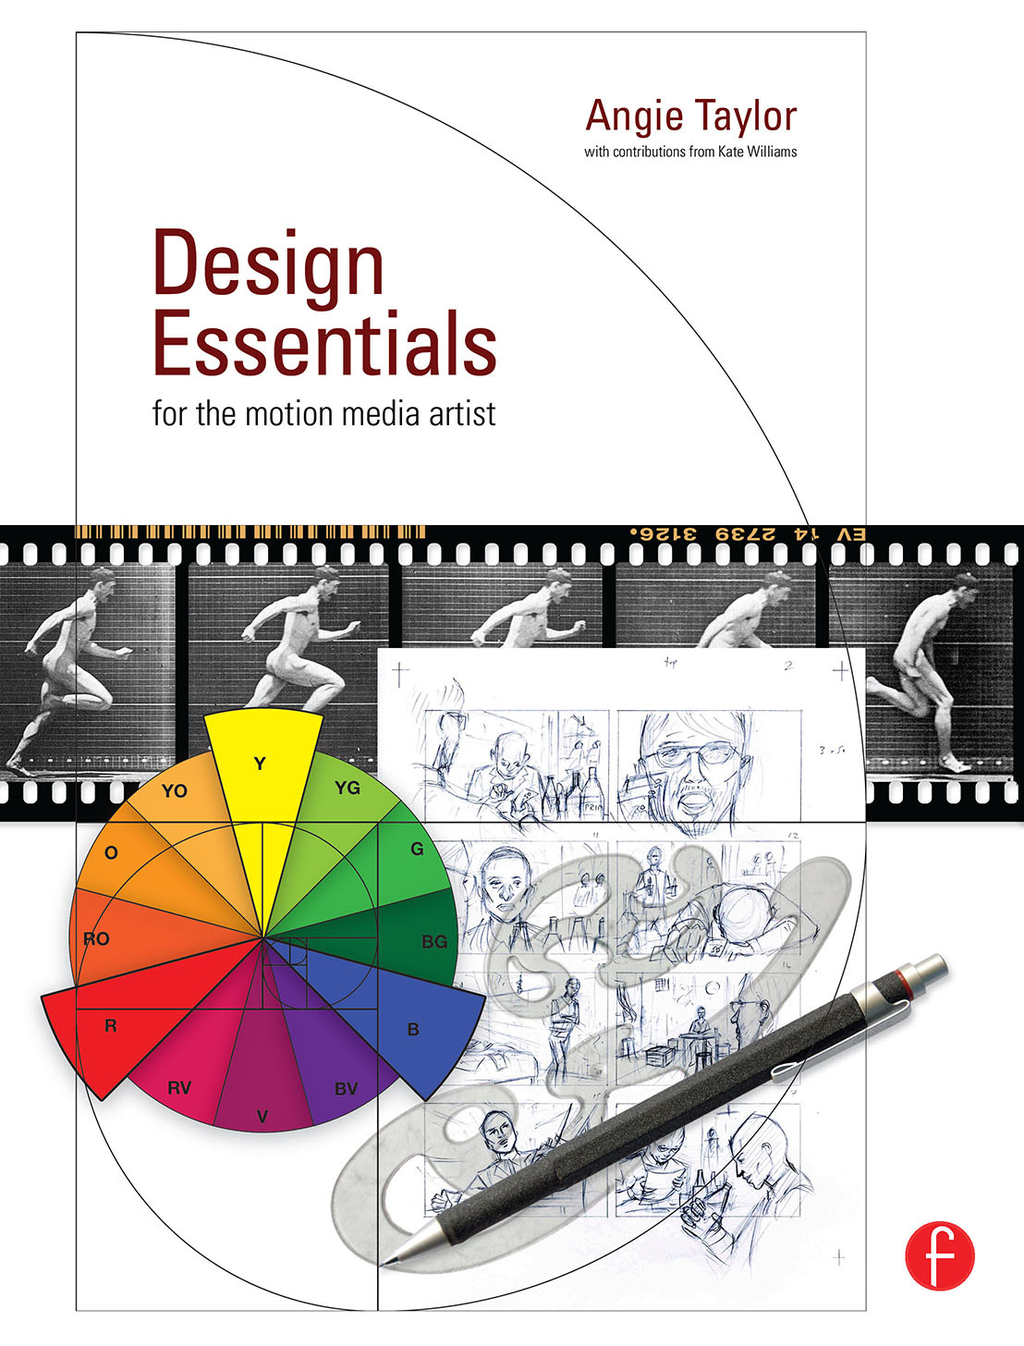 Design Essentials for the Motion Media Artist A Practical Guide to Principles & Techniques